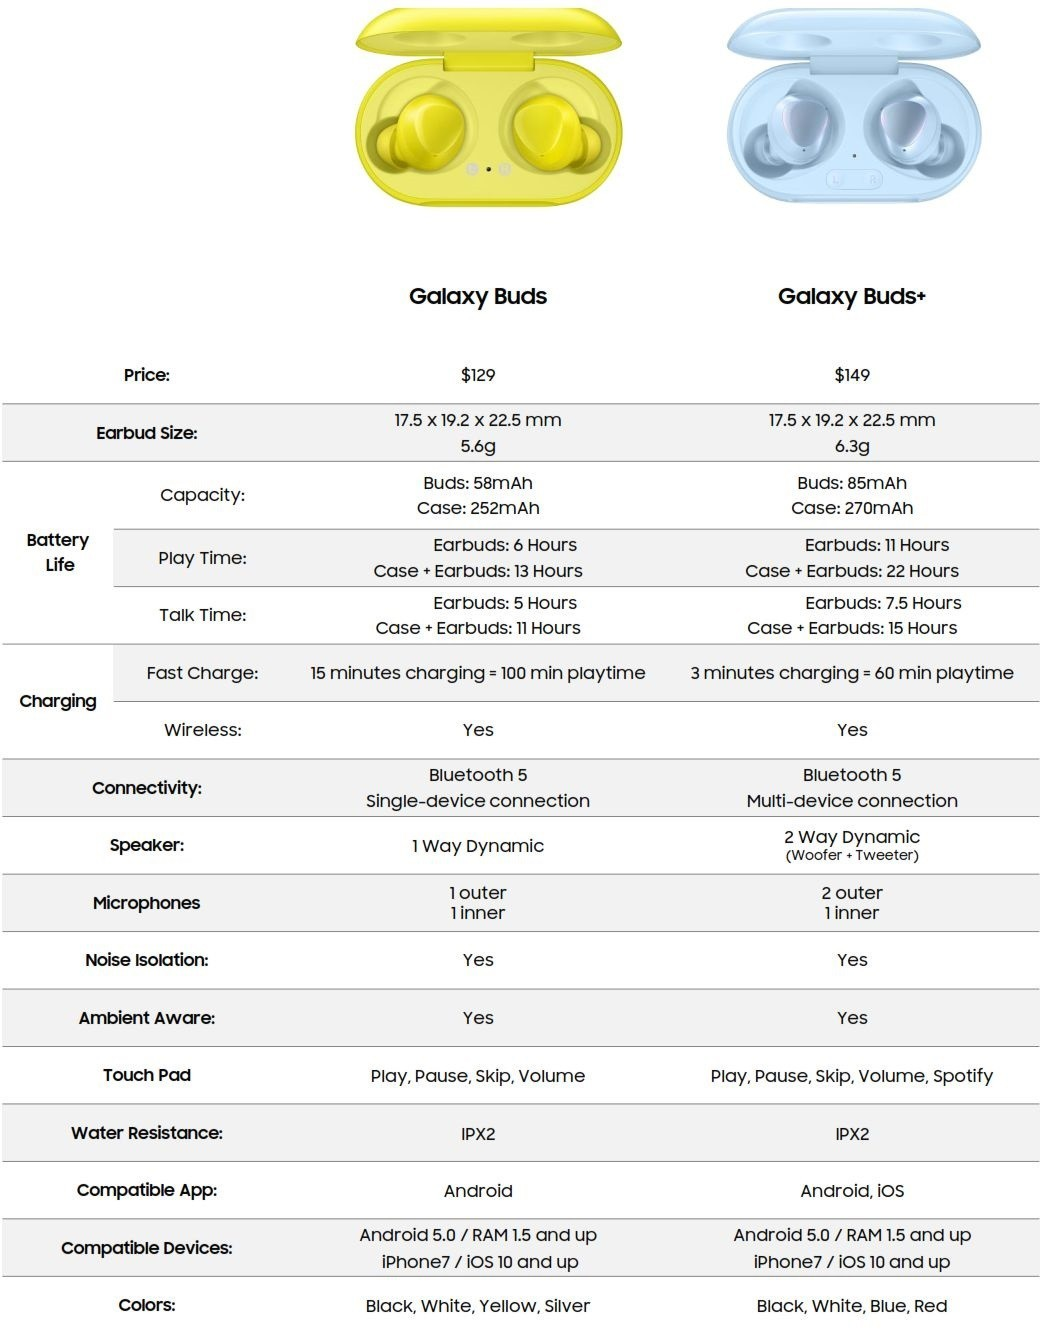 Samsung Galaxy Buds Plus vs Galaxy Buds Specifications Comparison